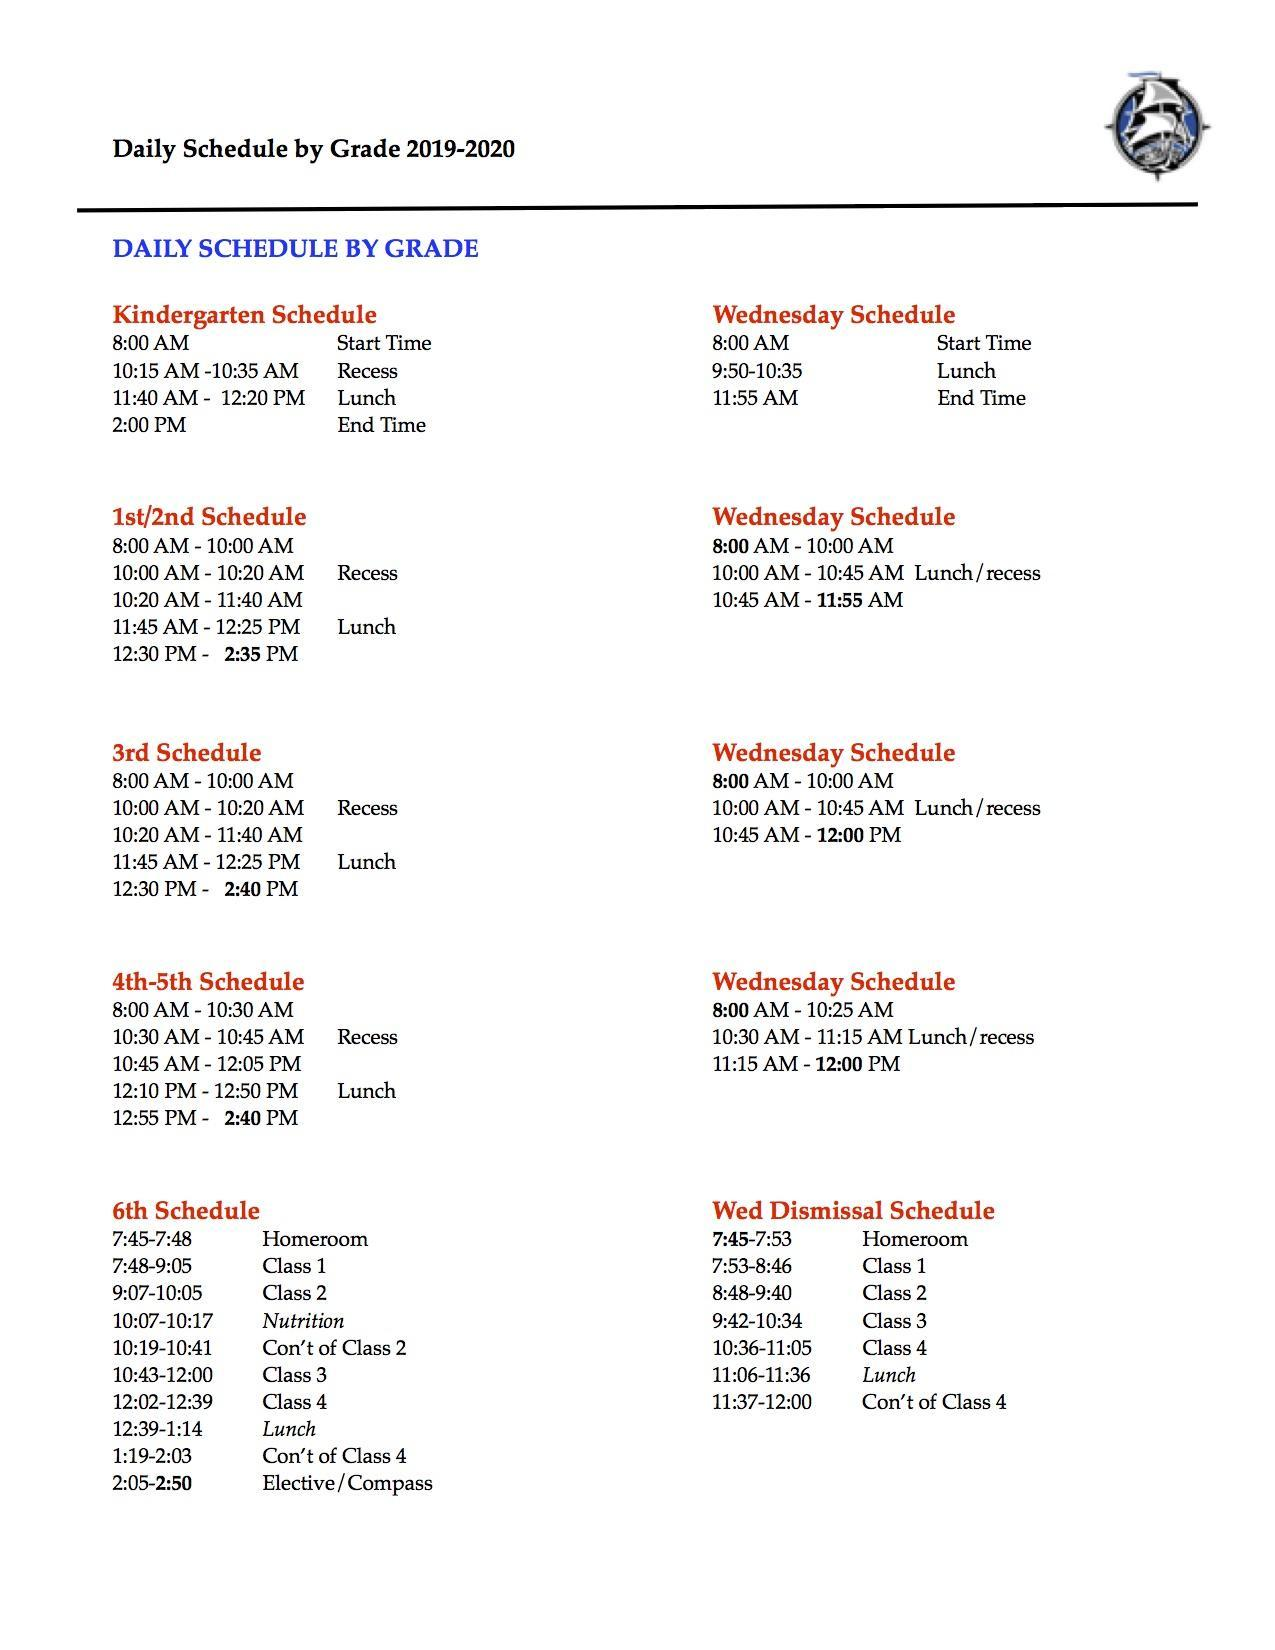 Daily Bell Schedule By Grade